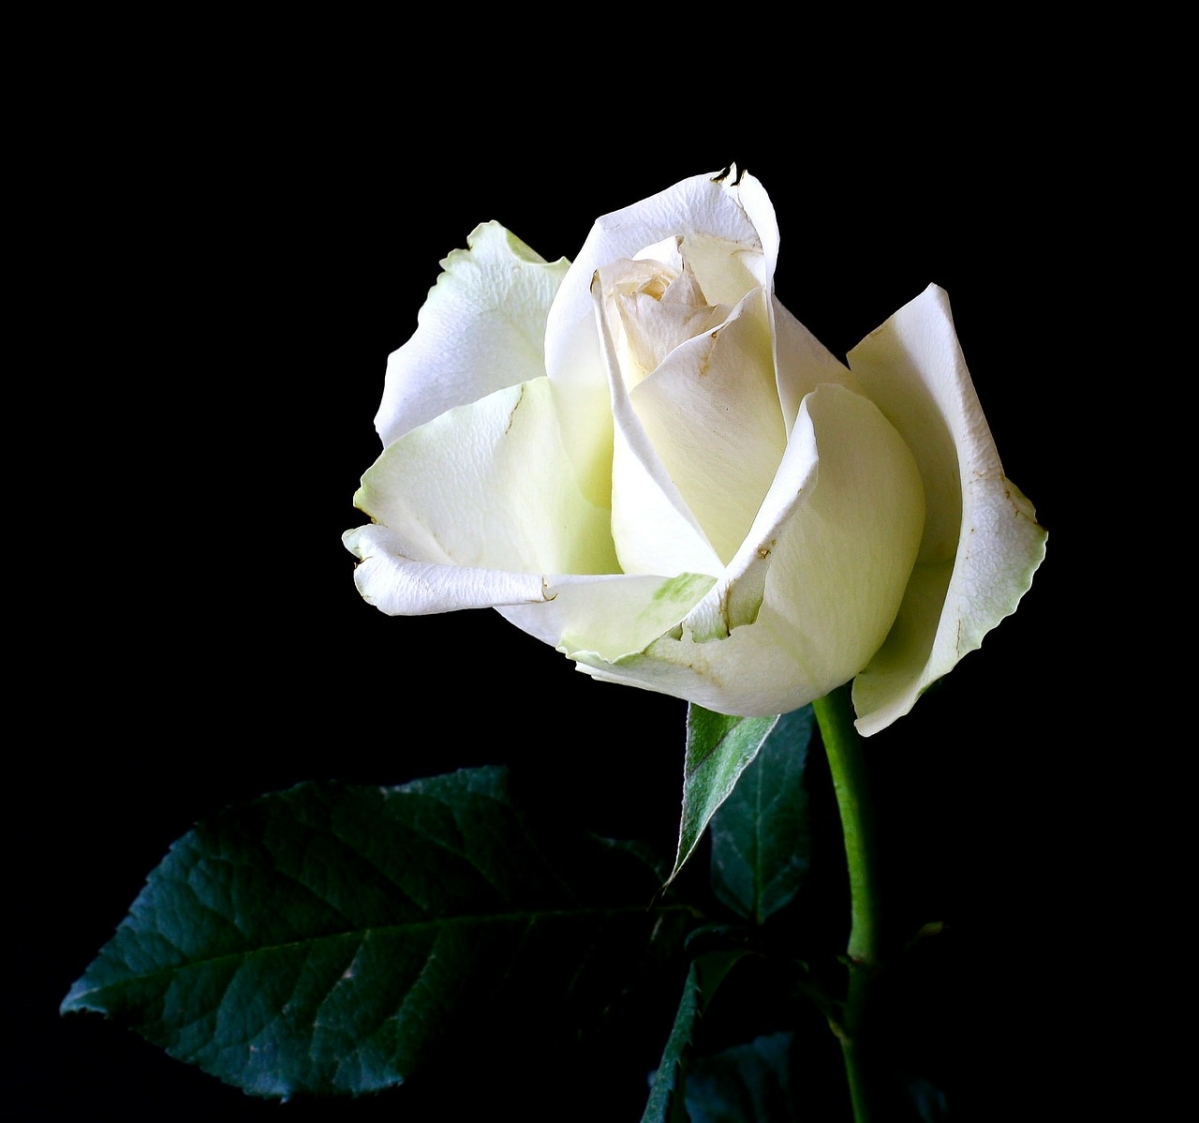 Rose Day 2020: What do different colours of roses mean?